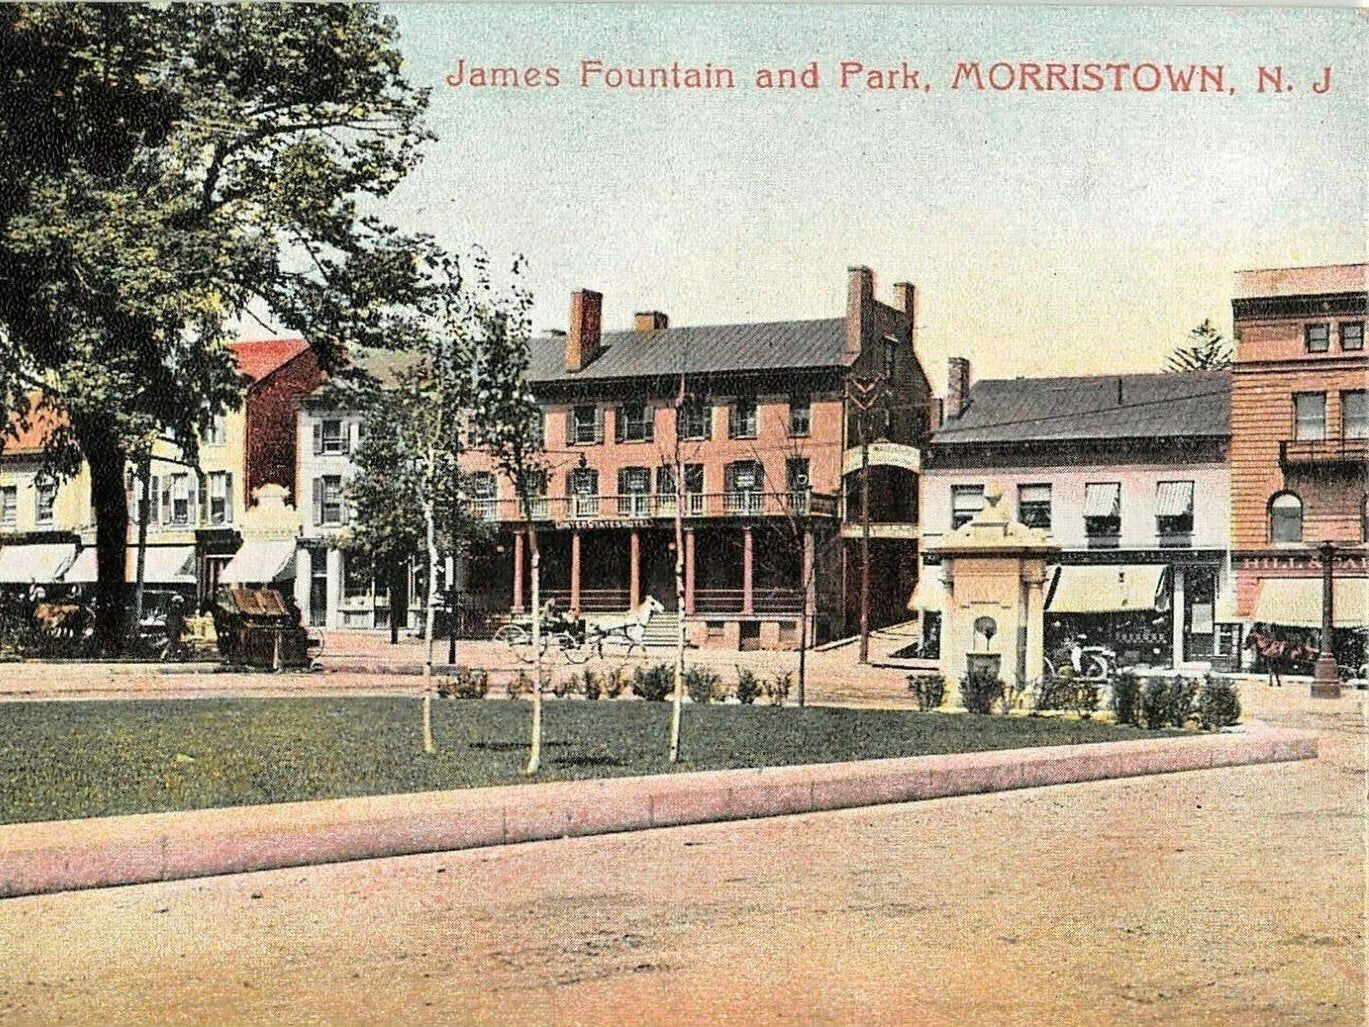 Morristown NJ, New Jersey, James Fountain, Park, Morris County, Vintage Modern Greeting Card NCC000550 by markopostcards on Etsy